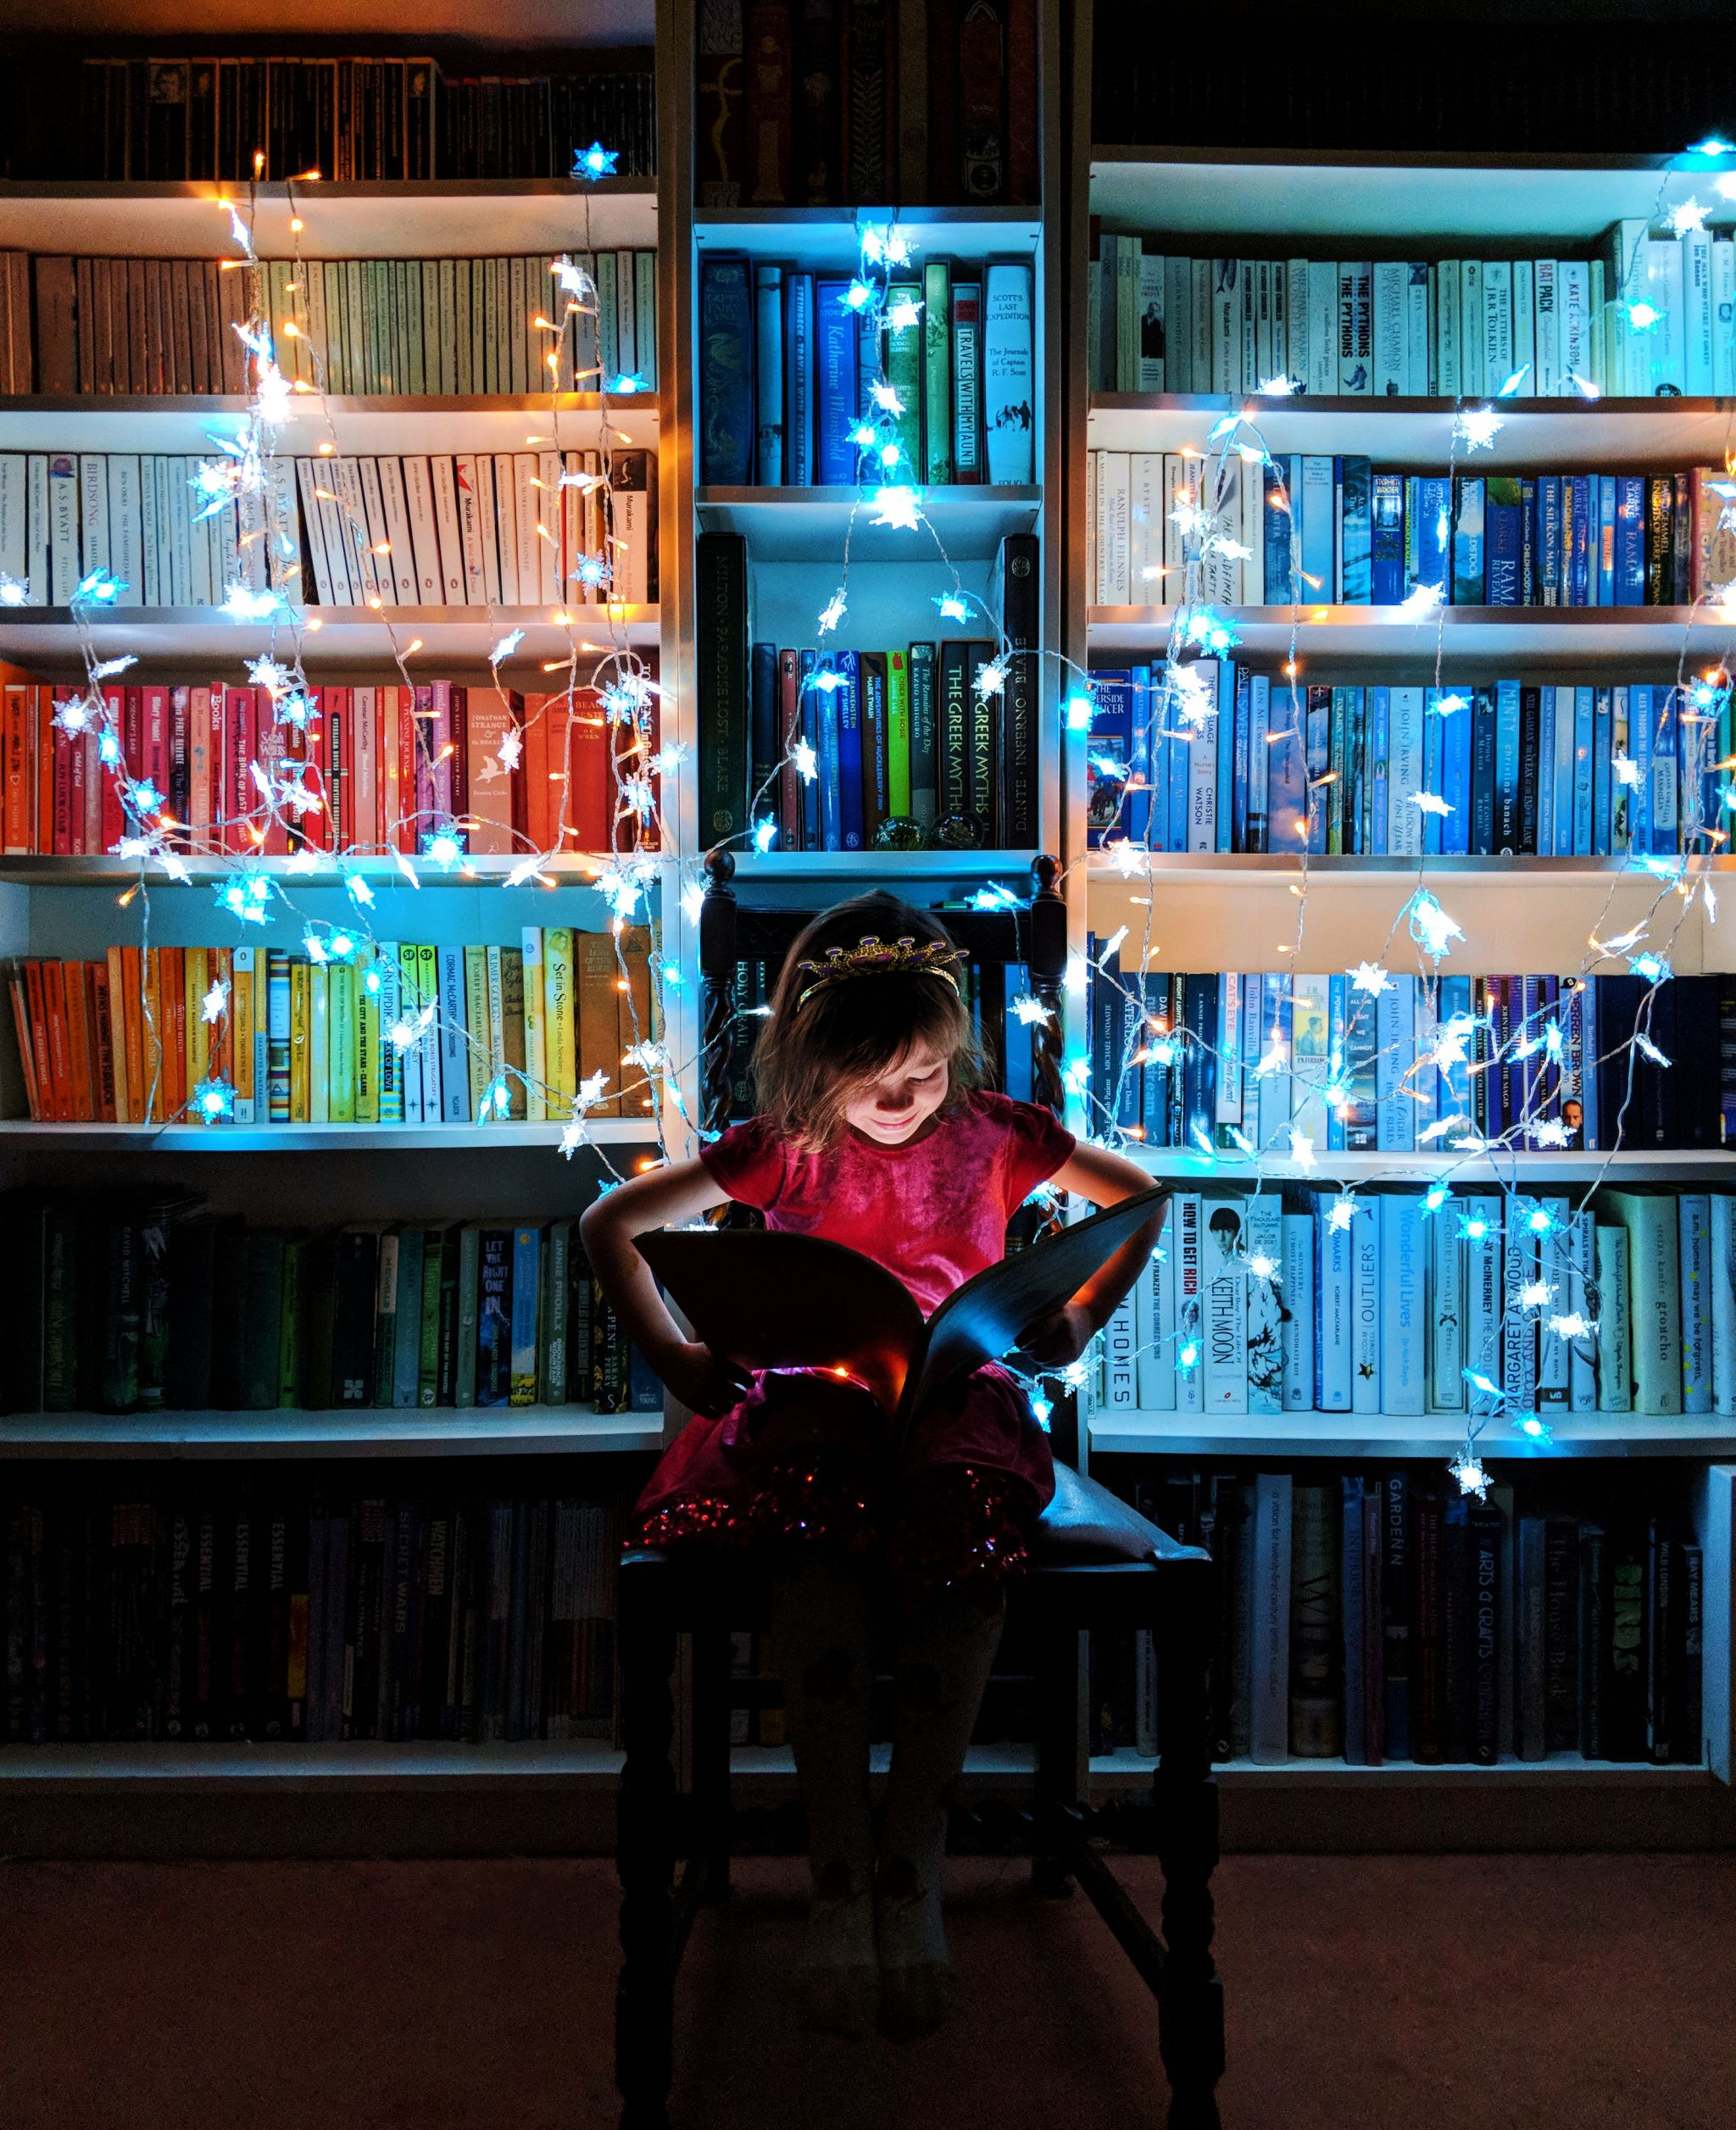 A little girl reading in front of illuminated bookshelves